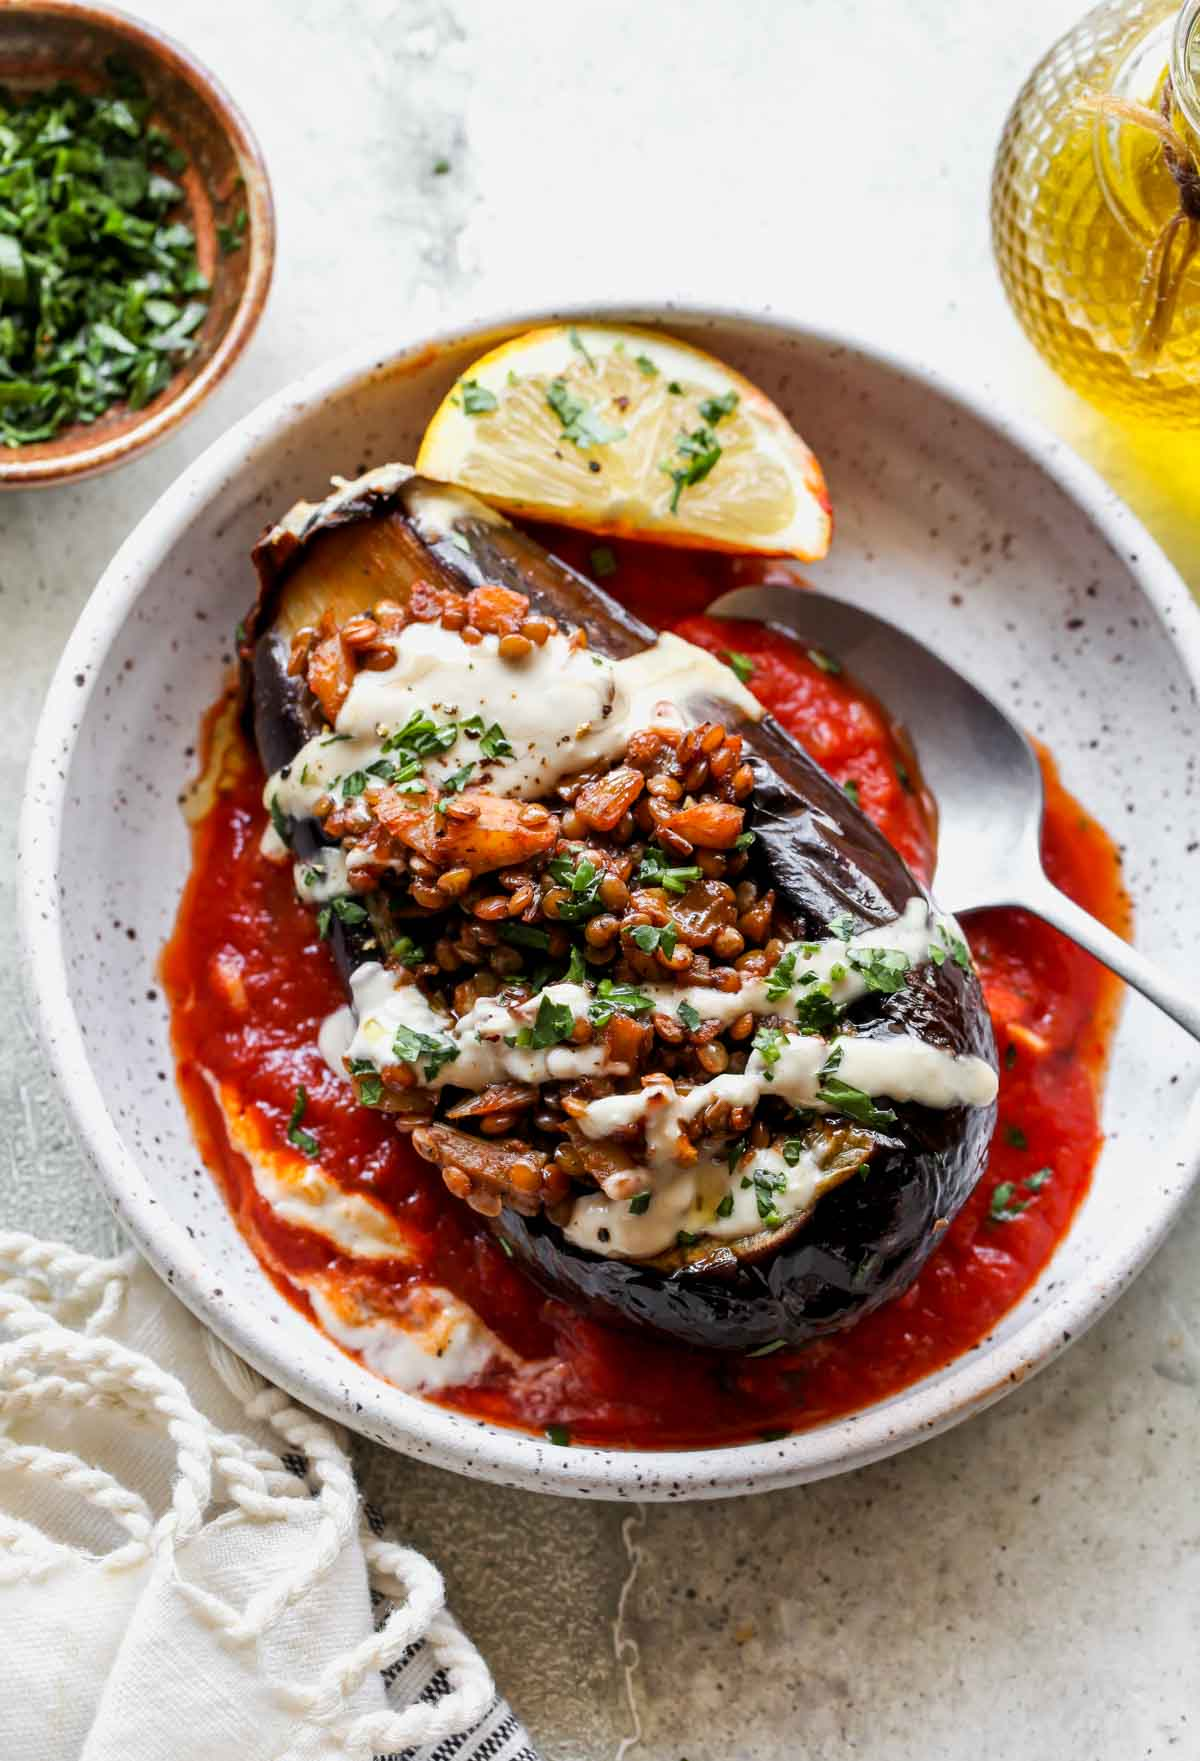 One filled eggplant in a white bowl topped with tahini sauce